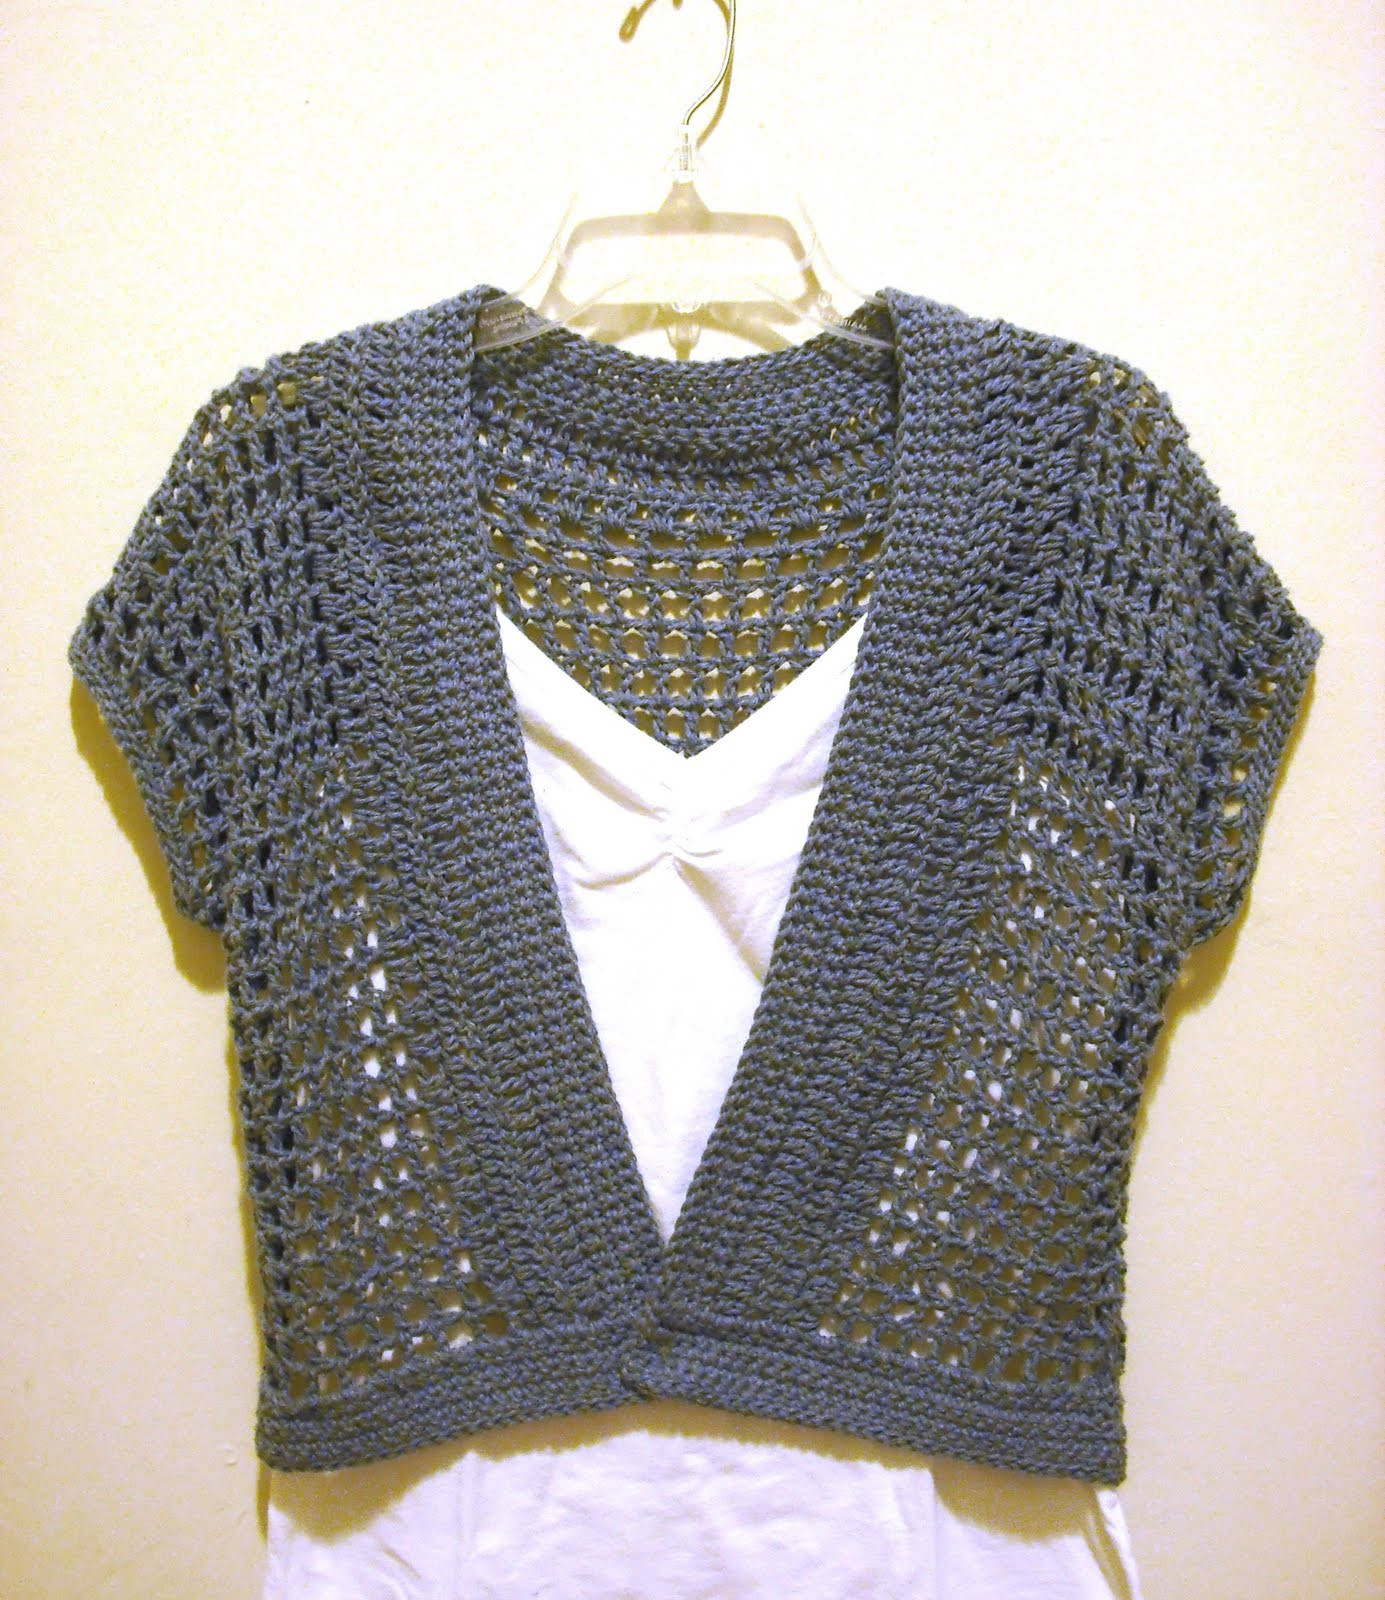 Crochet Sweaters Fresh Pattern for Knitted Shrug Sweater Aztec Sweater Dress Of Fresh 50 Images Crochet Sweaters